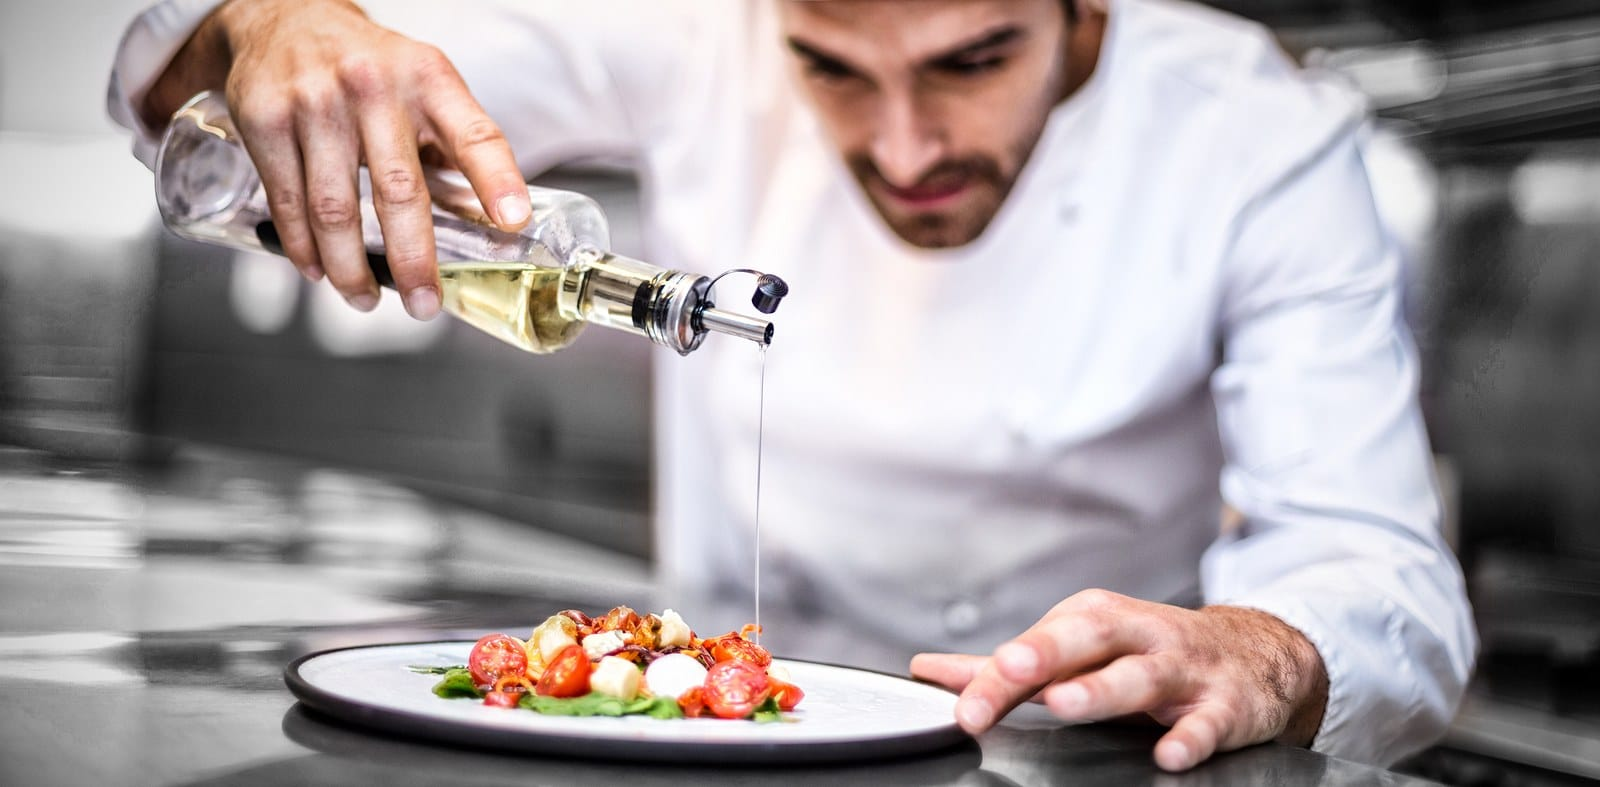 A chef carefully pouring oil on a salad